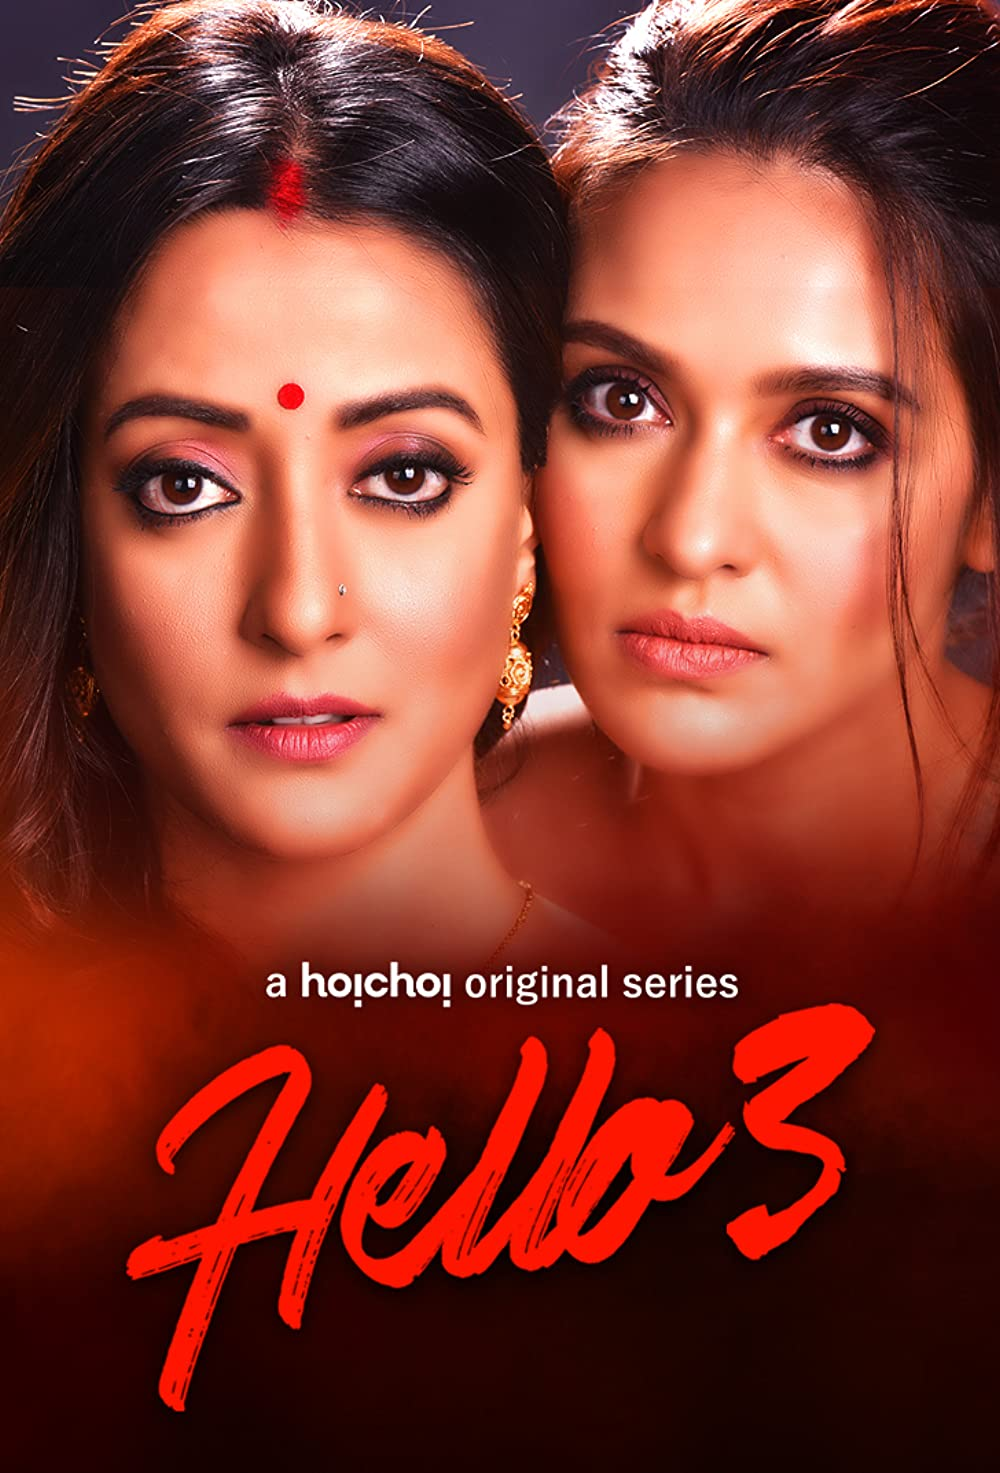 Hello 3 2021 S03 Hoichoi Originals Bengali Web Series 720p HDRip 1GB x264 AAC